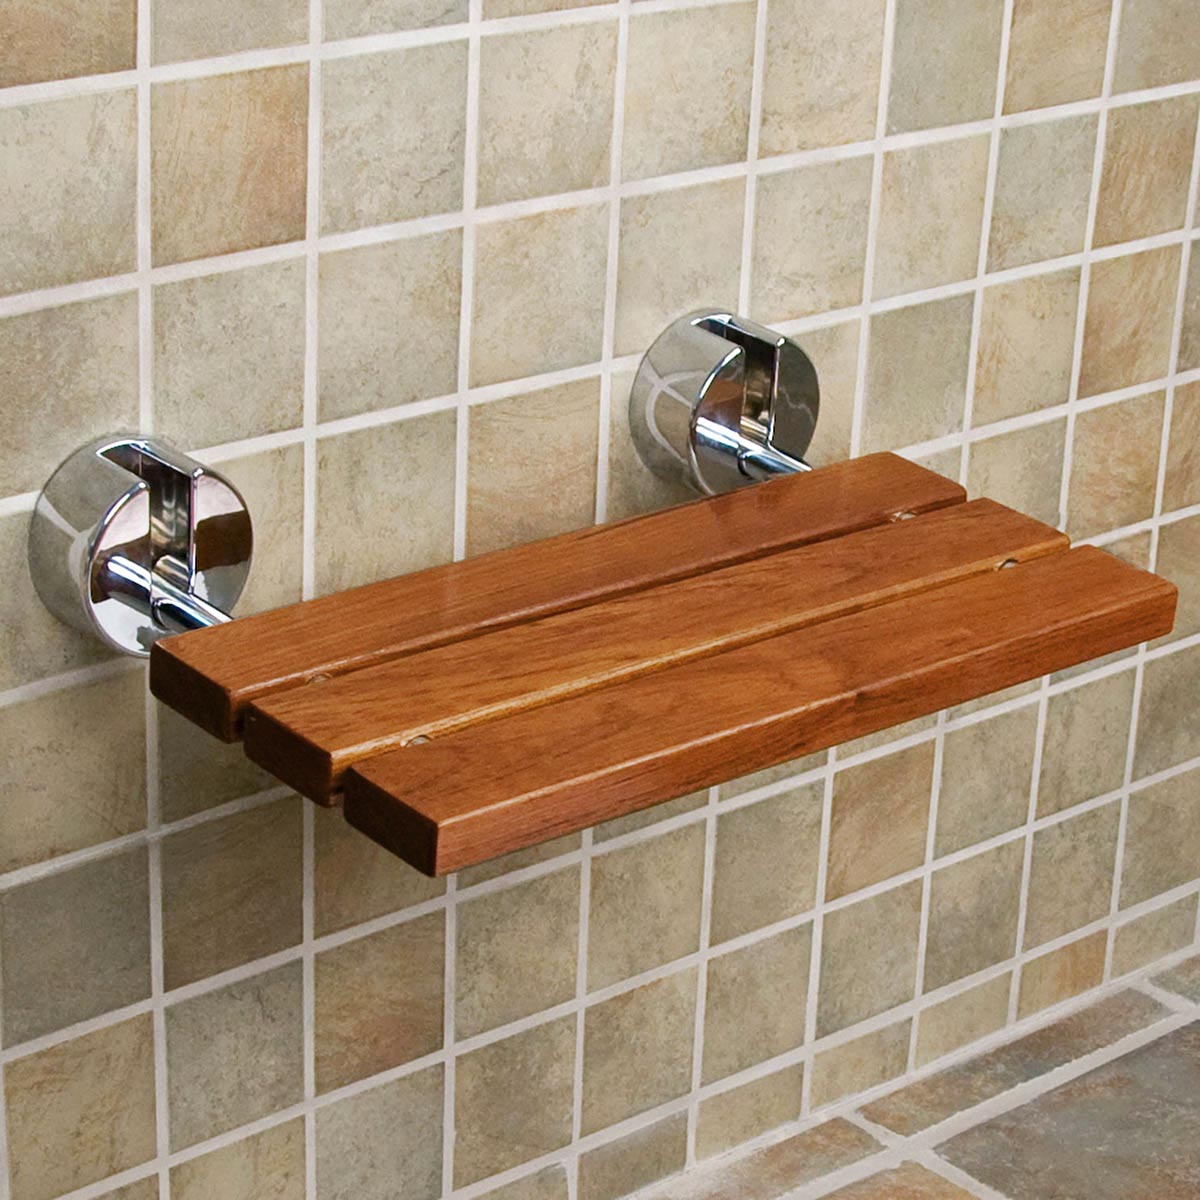 Clevr 20 Teak Modern Folding Shower Seat Bench Dark Wood Medical Wall Mount